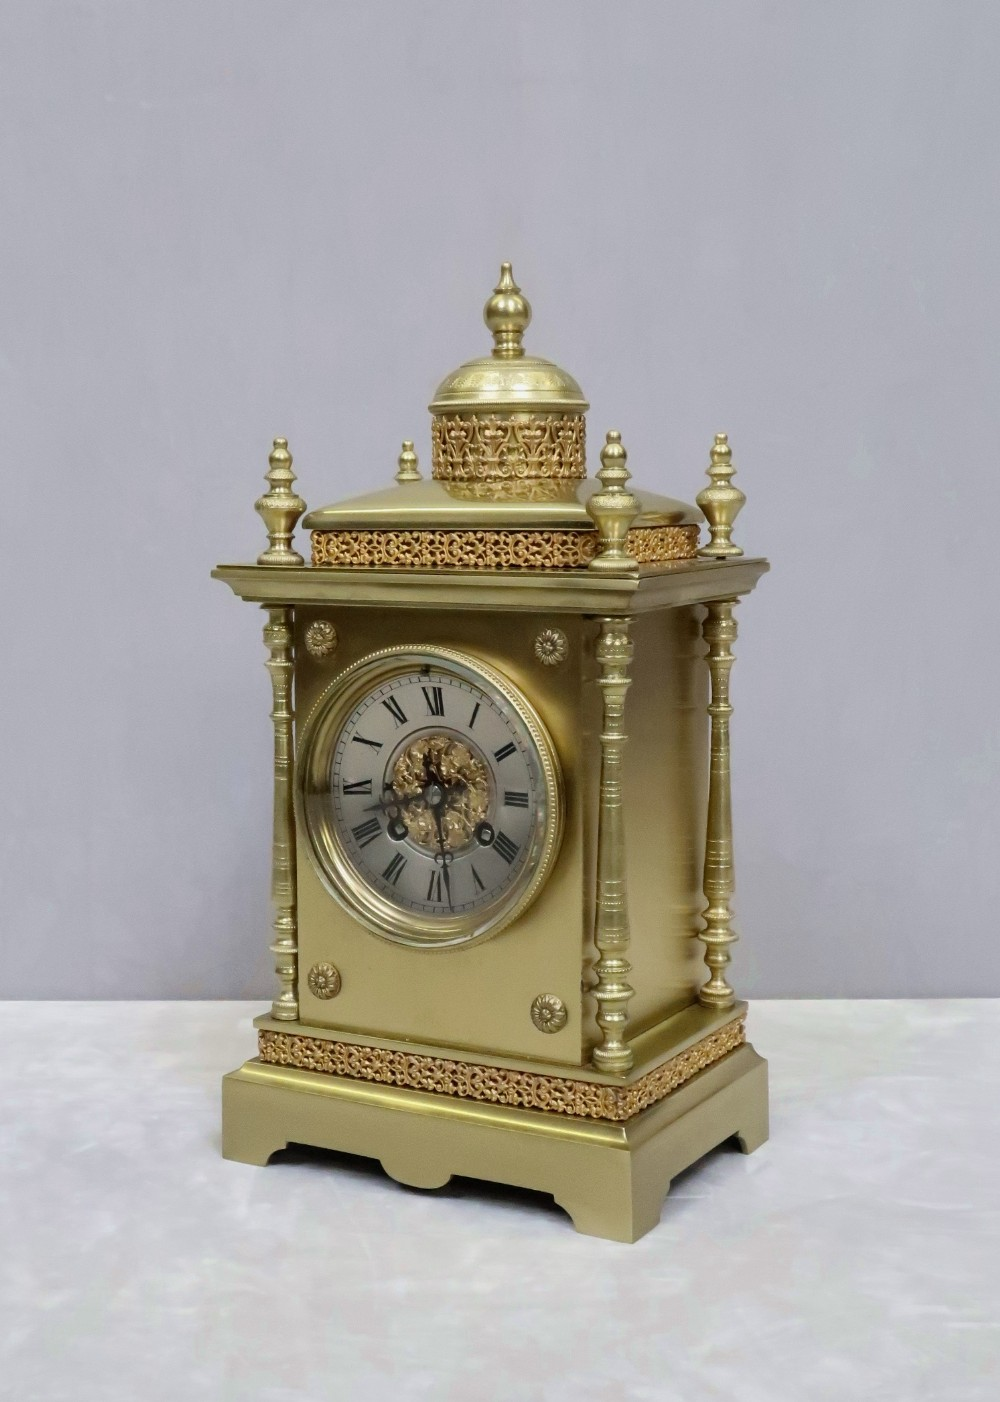 french belle epoque decorative brass mantel clock by japy freres